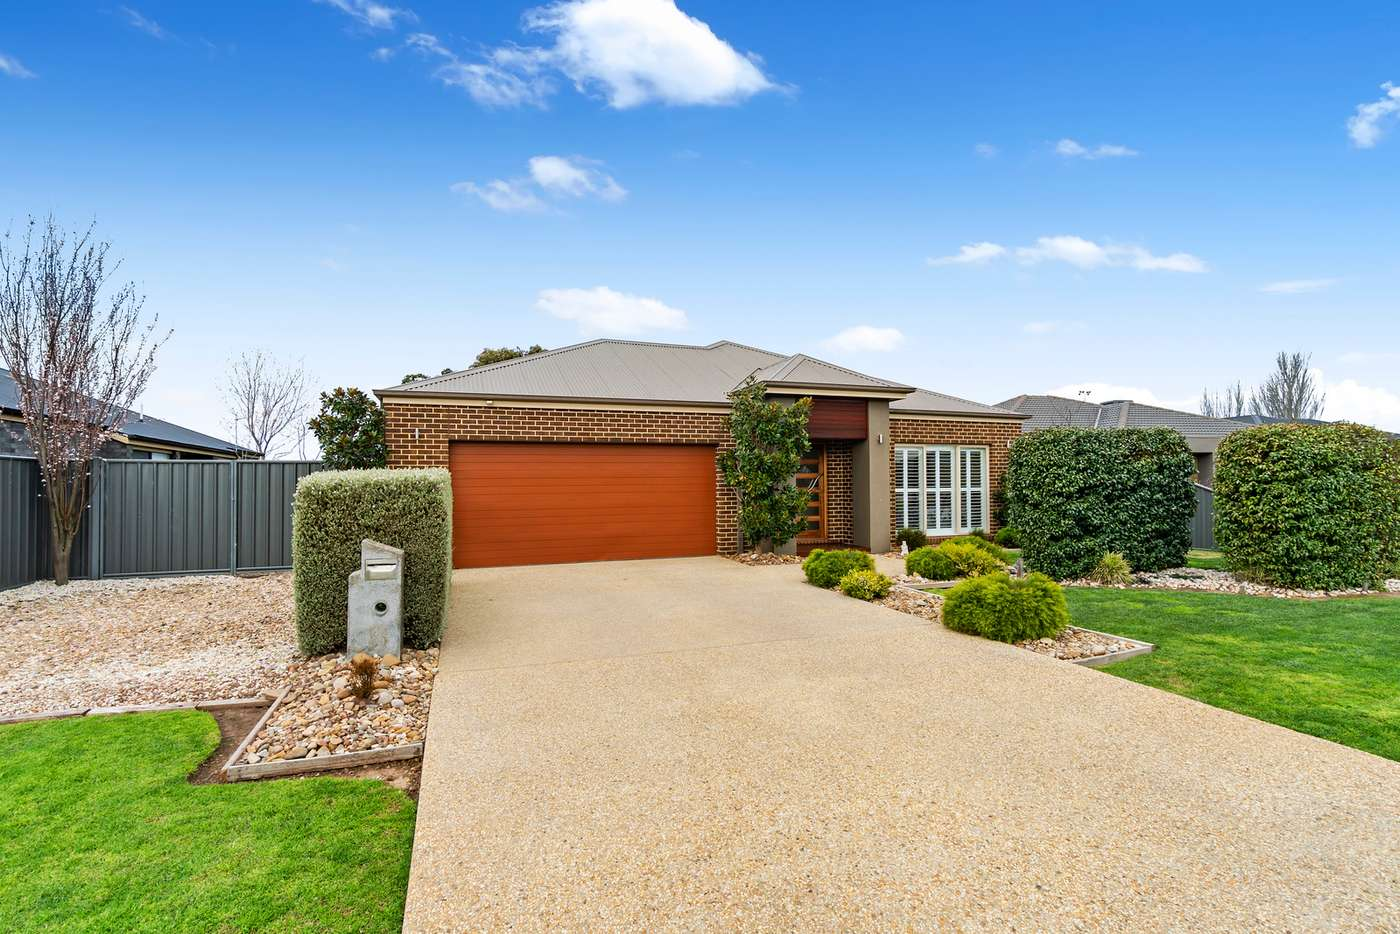 Main view of Homely house listing, 19 Thornley Court, Sale VIC 3850